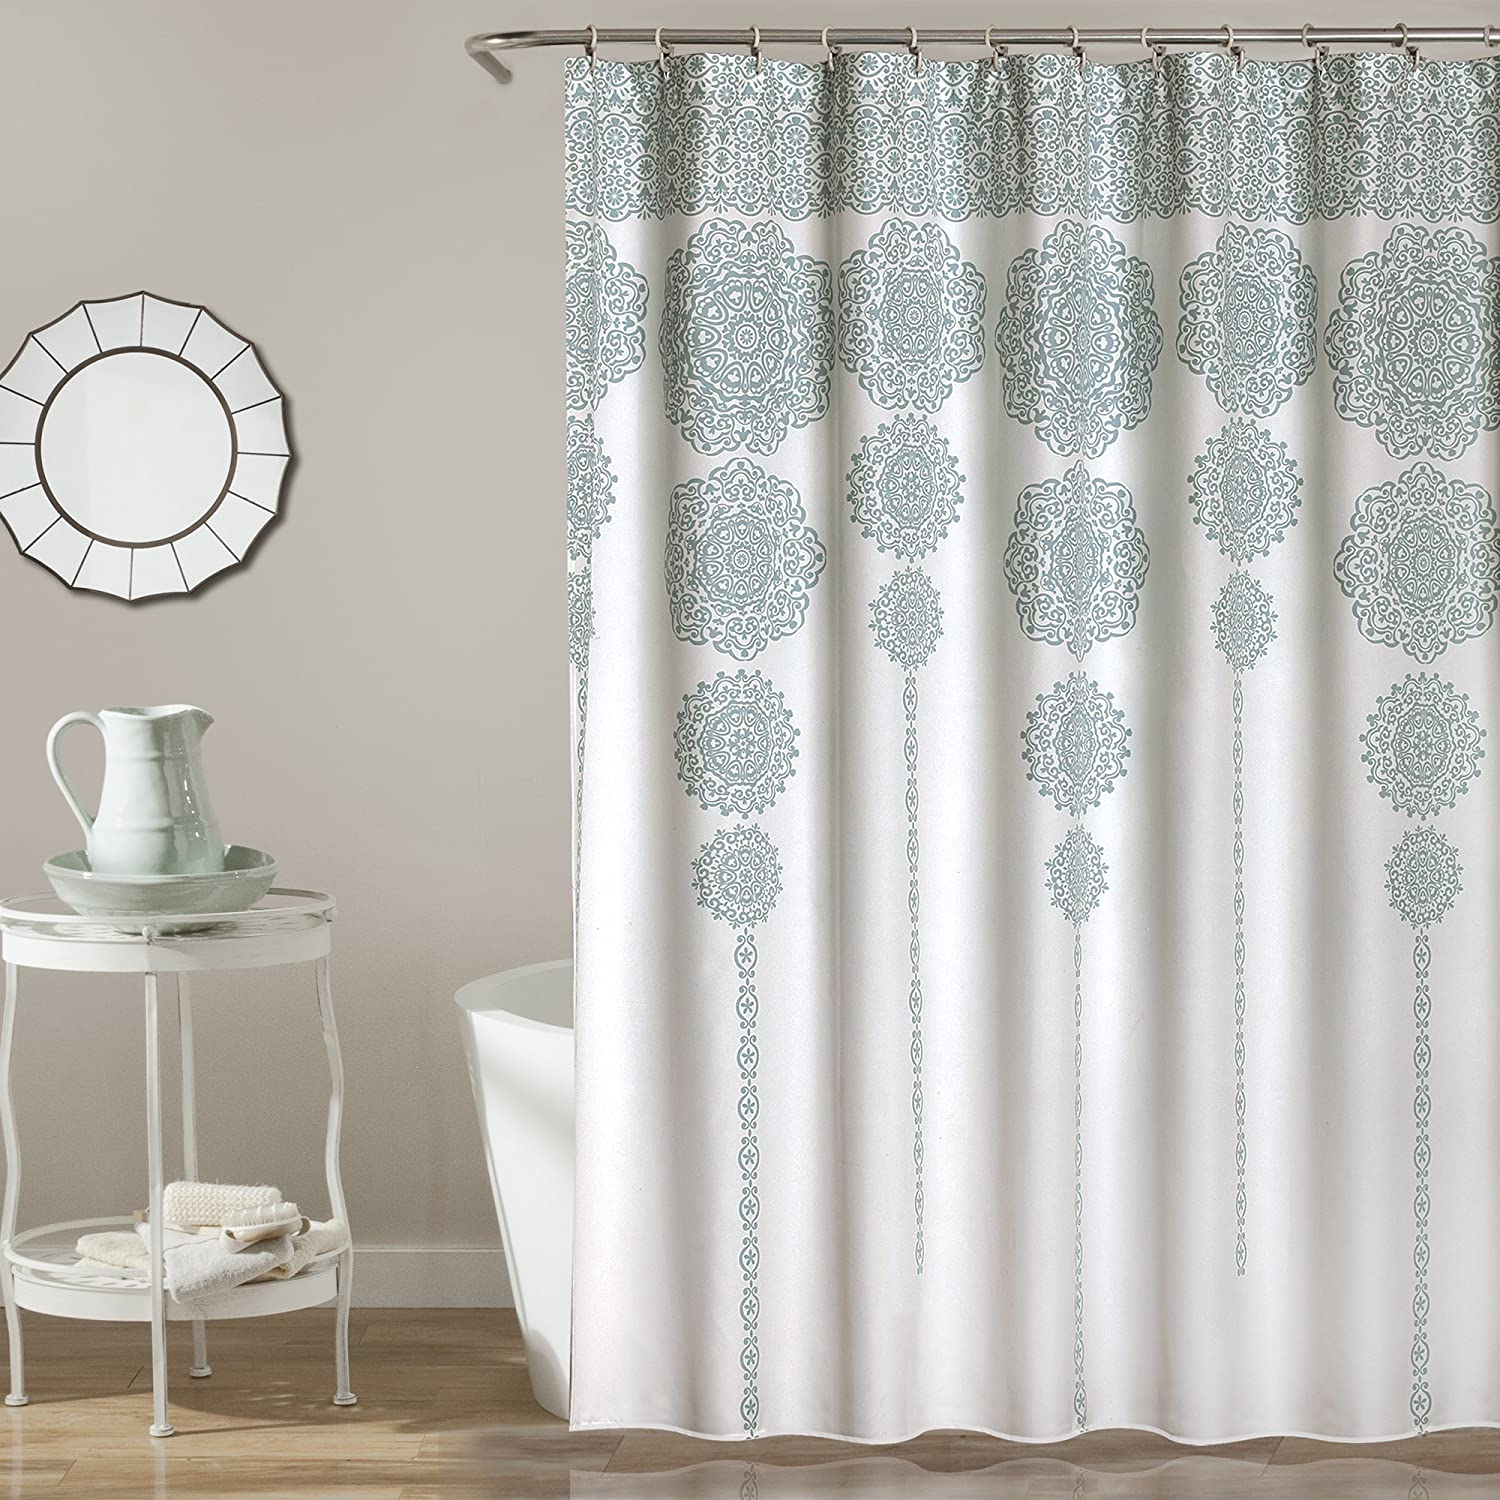 "Lush Decor, Blue Stripe Medallion Shower Curtain-Fabric Mandala Bohemian Damask Print Design, x 72, 72"" x 72"""